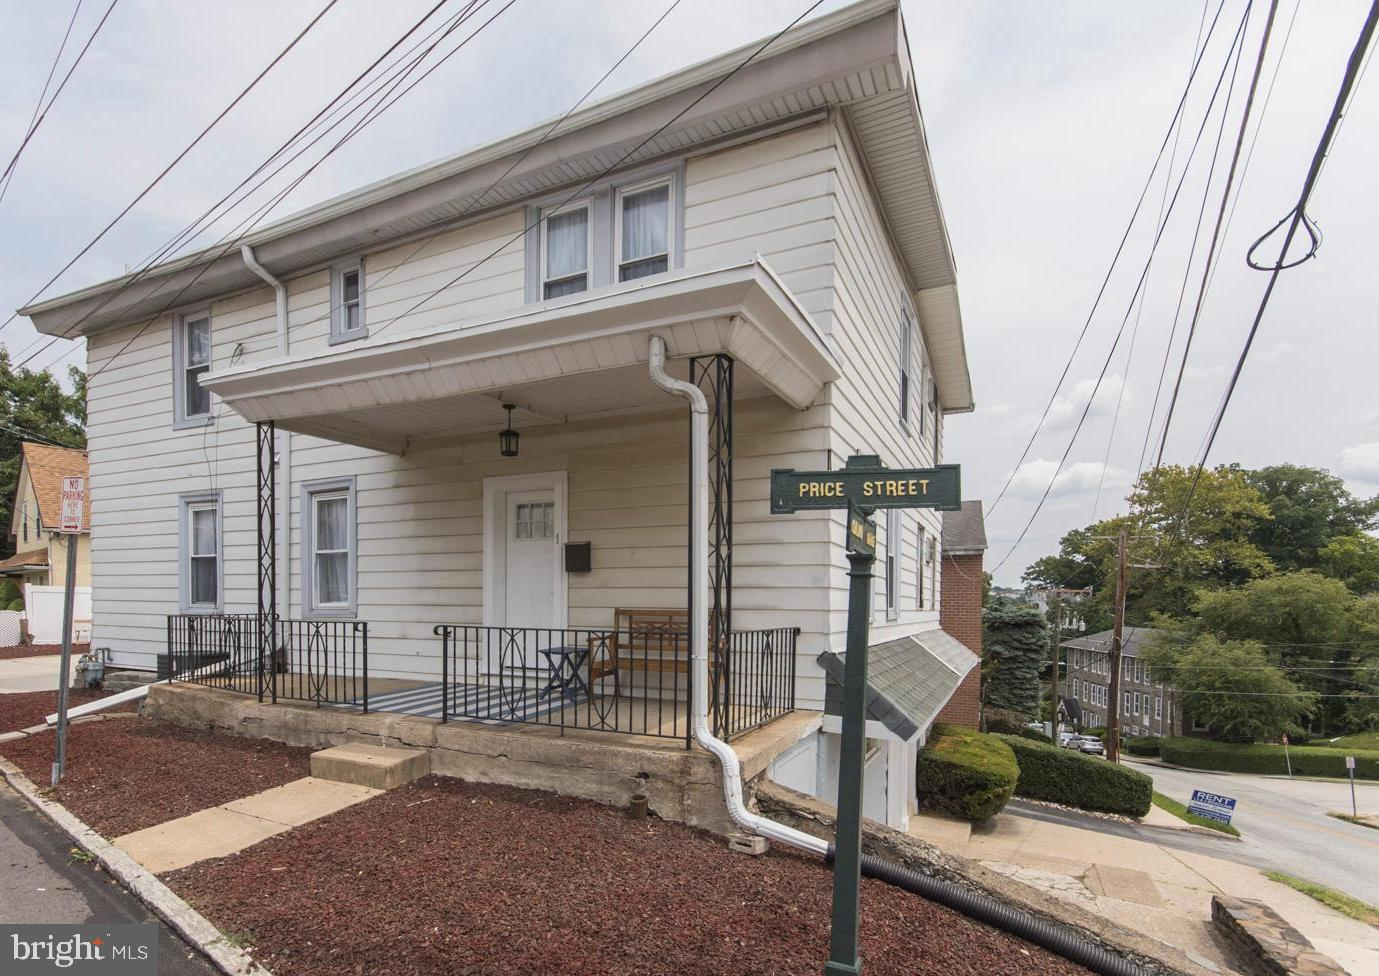 1 Price Street has it all! This 2 bedroom, 1 bathroom twin is located in Lower Merion's award winning school district and is walkable to shops and restaurants in Manayunk, a local park and an outdoor swim facility. This property underwent a full interior upgrade in 2017. The first floor is an open concept living area comprised of a modern kitchen and a spacious dining room and living room. Downstairs, you will find a walk out finished basement with an exterior patio and ample space for a play room, office or exercise area. The second floor includes two large bedrooms, a recently updated bathroom and main floor laundry. This property has a driveway large enough for two full sized cars and three outdoor seating areas.